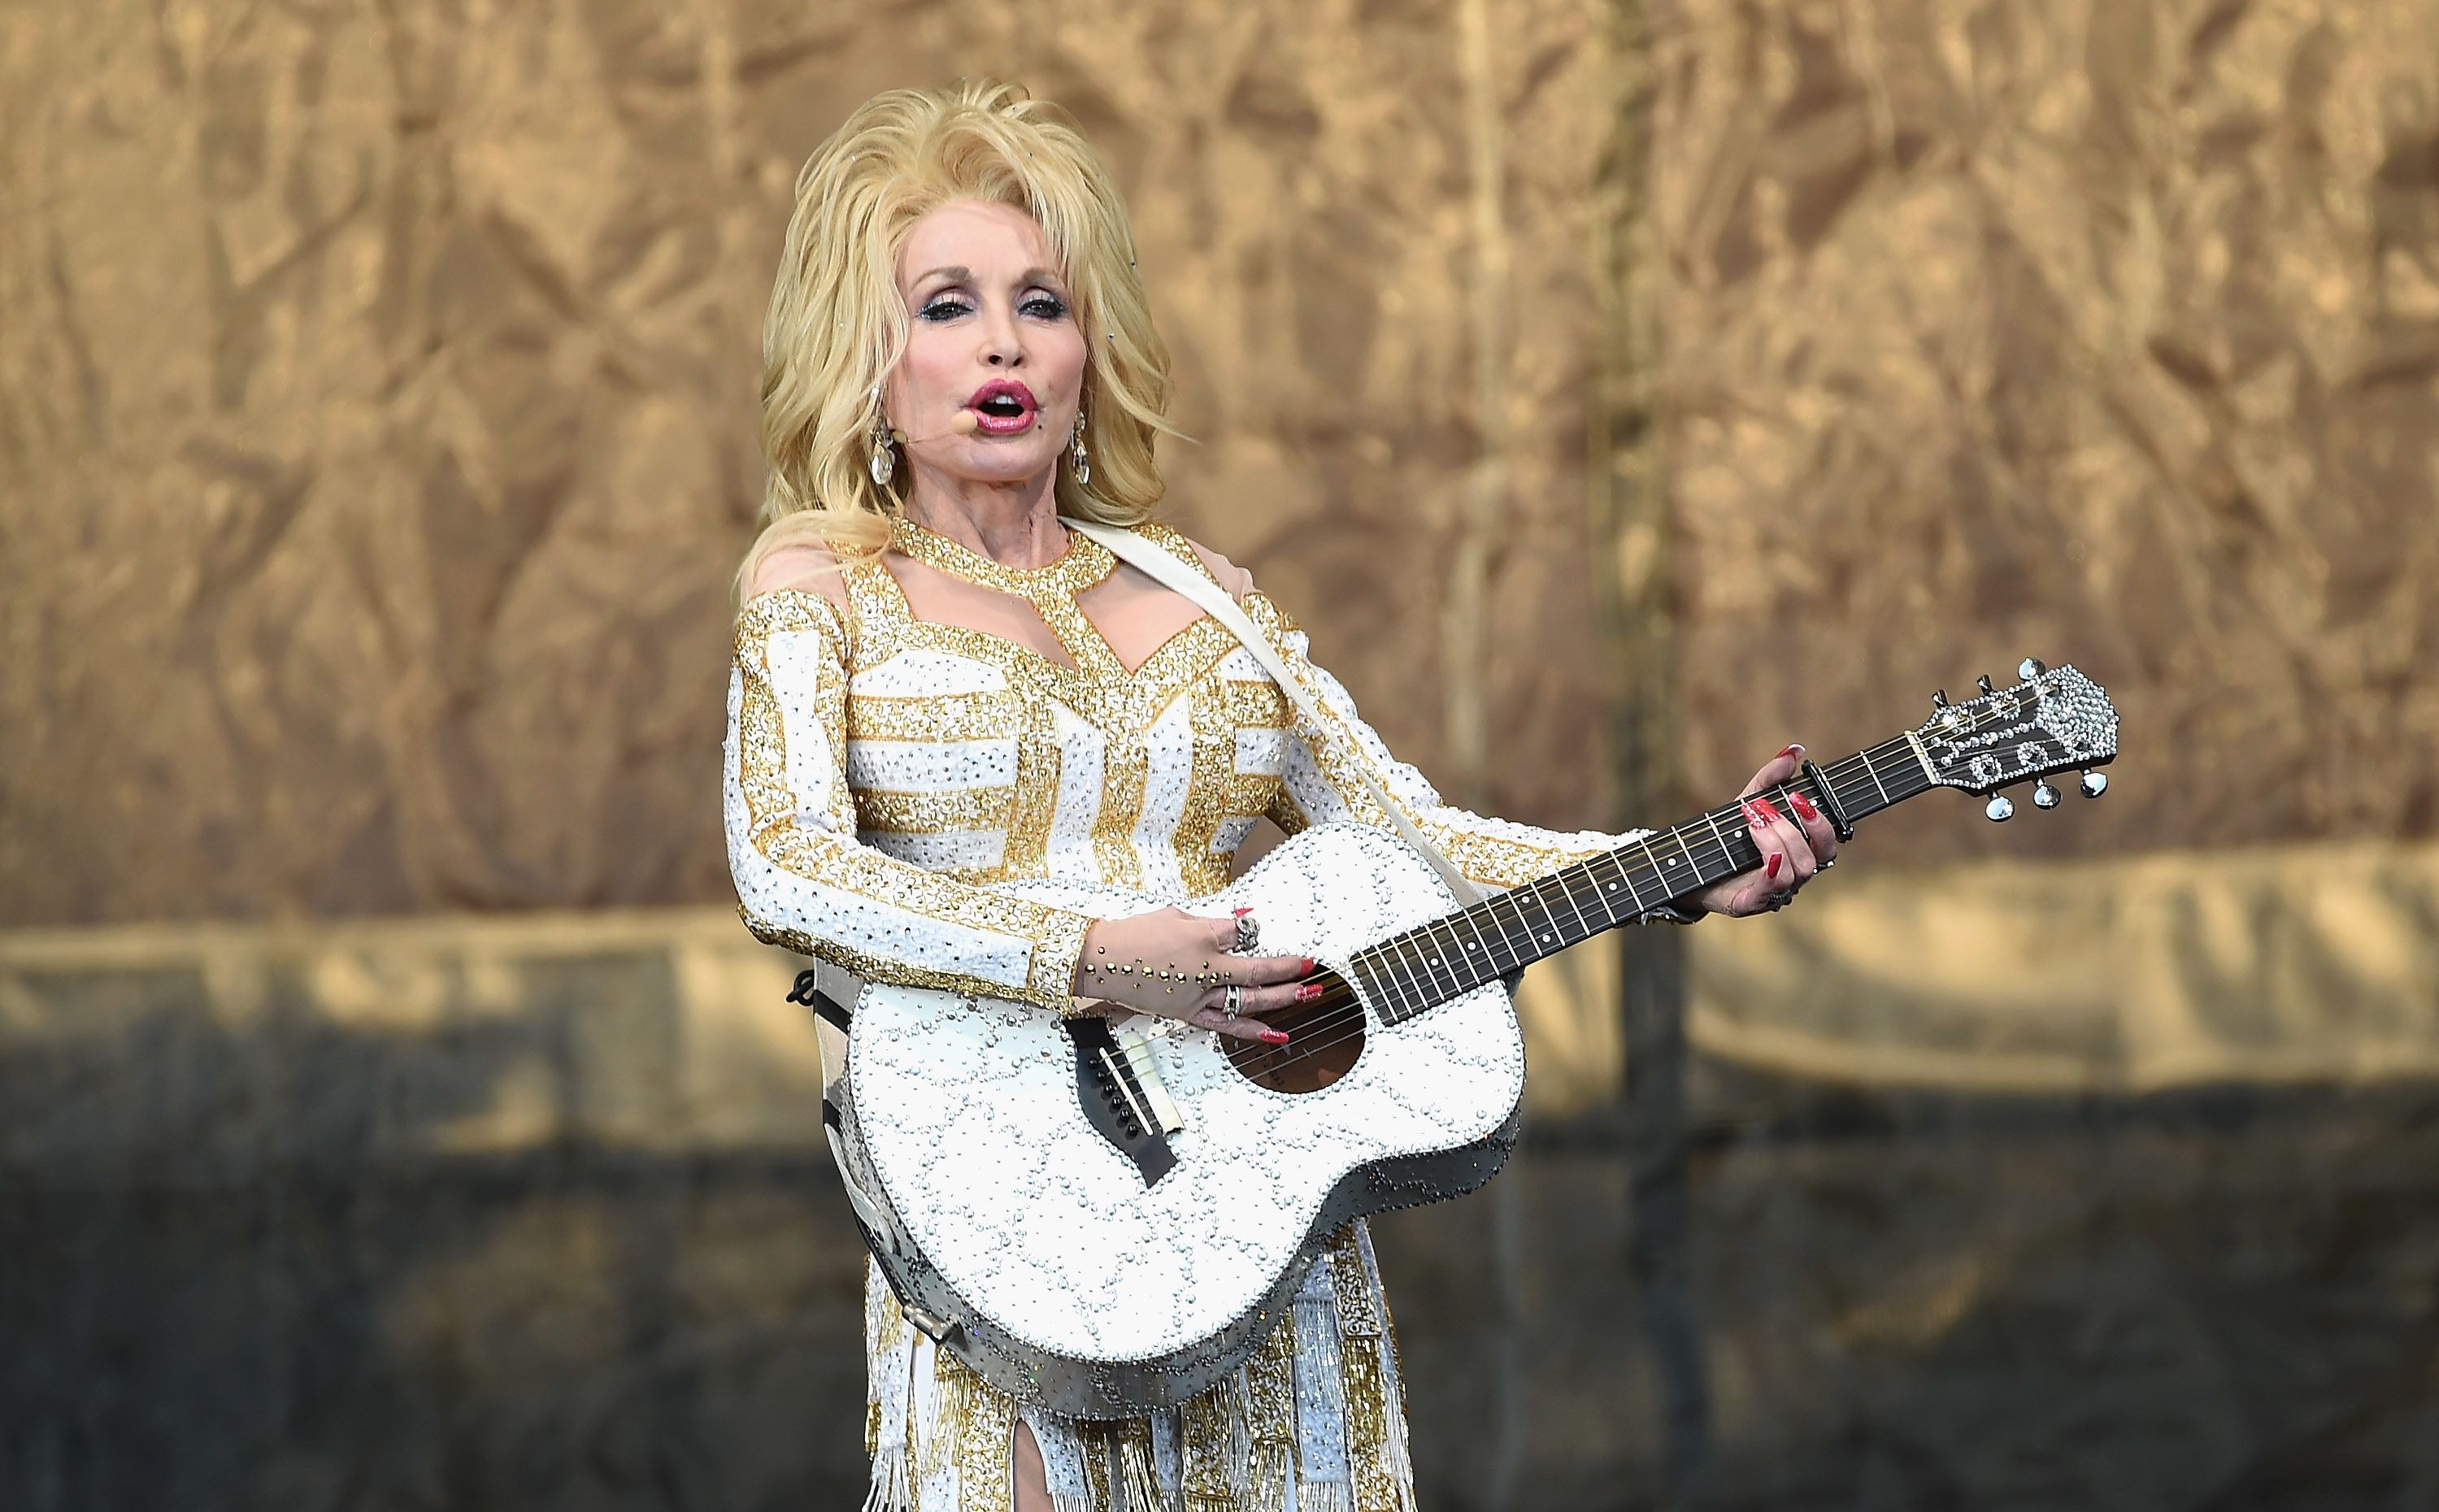 NEW YORK, NY - JUNE 25:  Country music recording artist Dolly Parton performs on stage during the 'Pure & Simple' tour at Forest Hills Stadium on June 25, 2016 in New York City.  (Photo by Gary Gershoff/Getty Images)